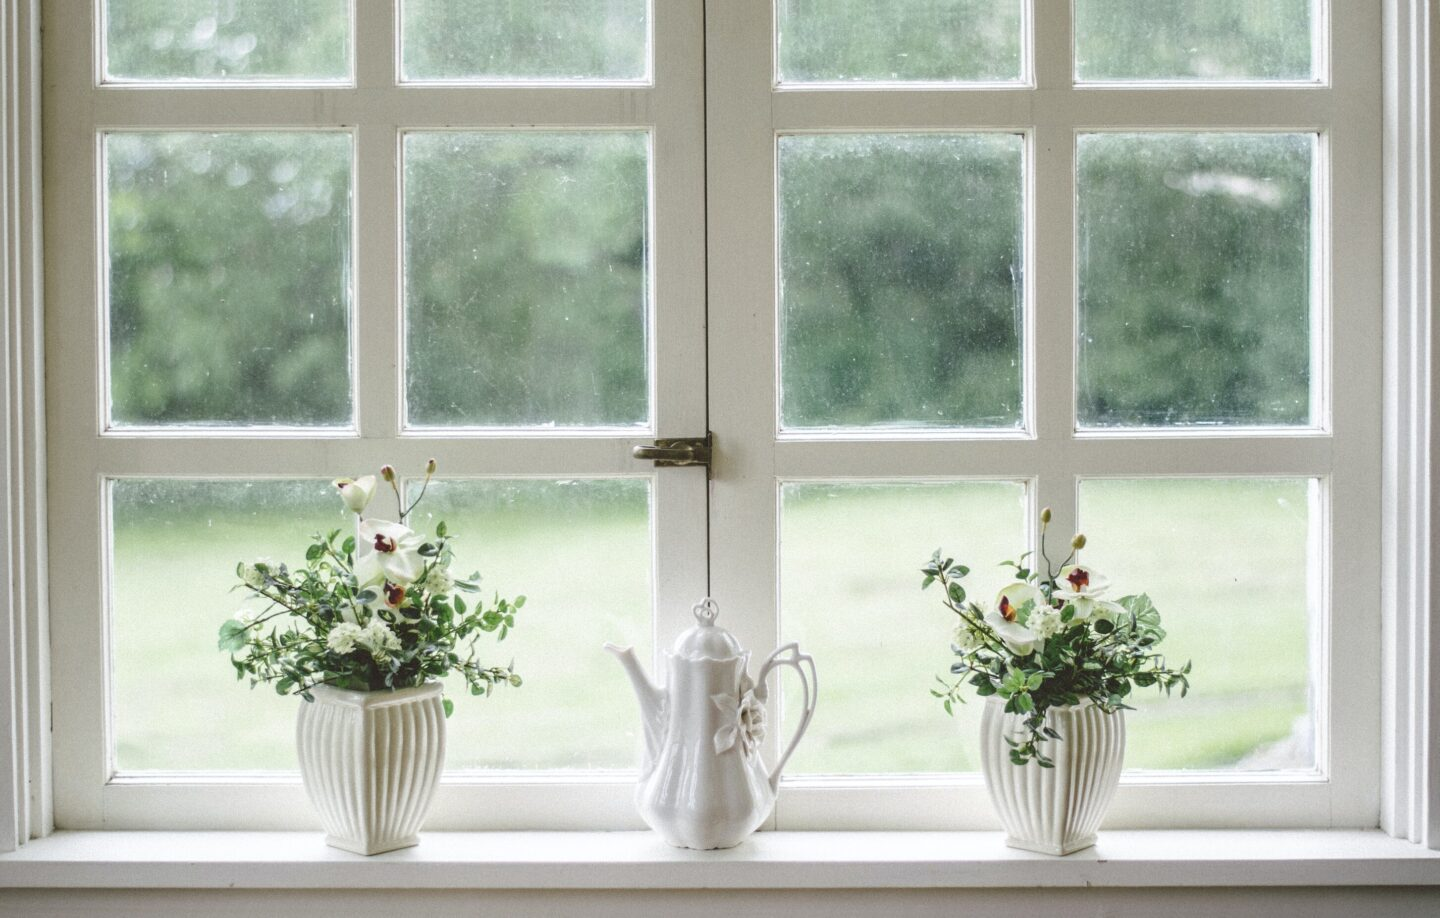 6 Ways To Be More Eco-Friendly At Home